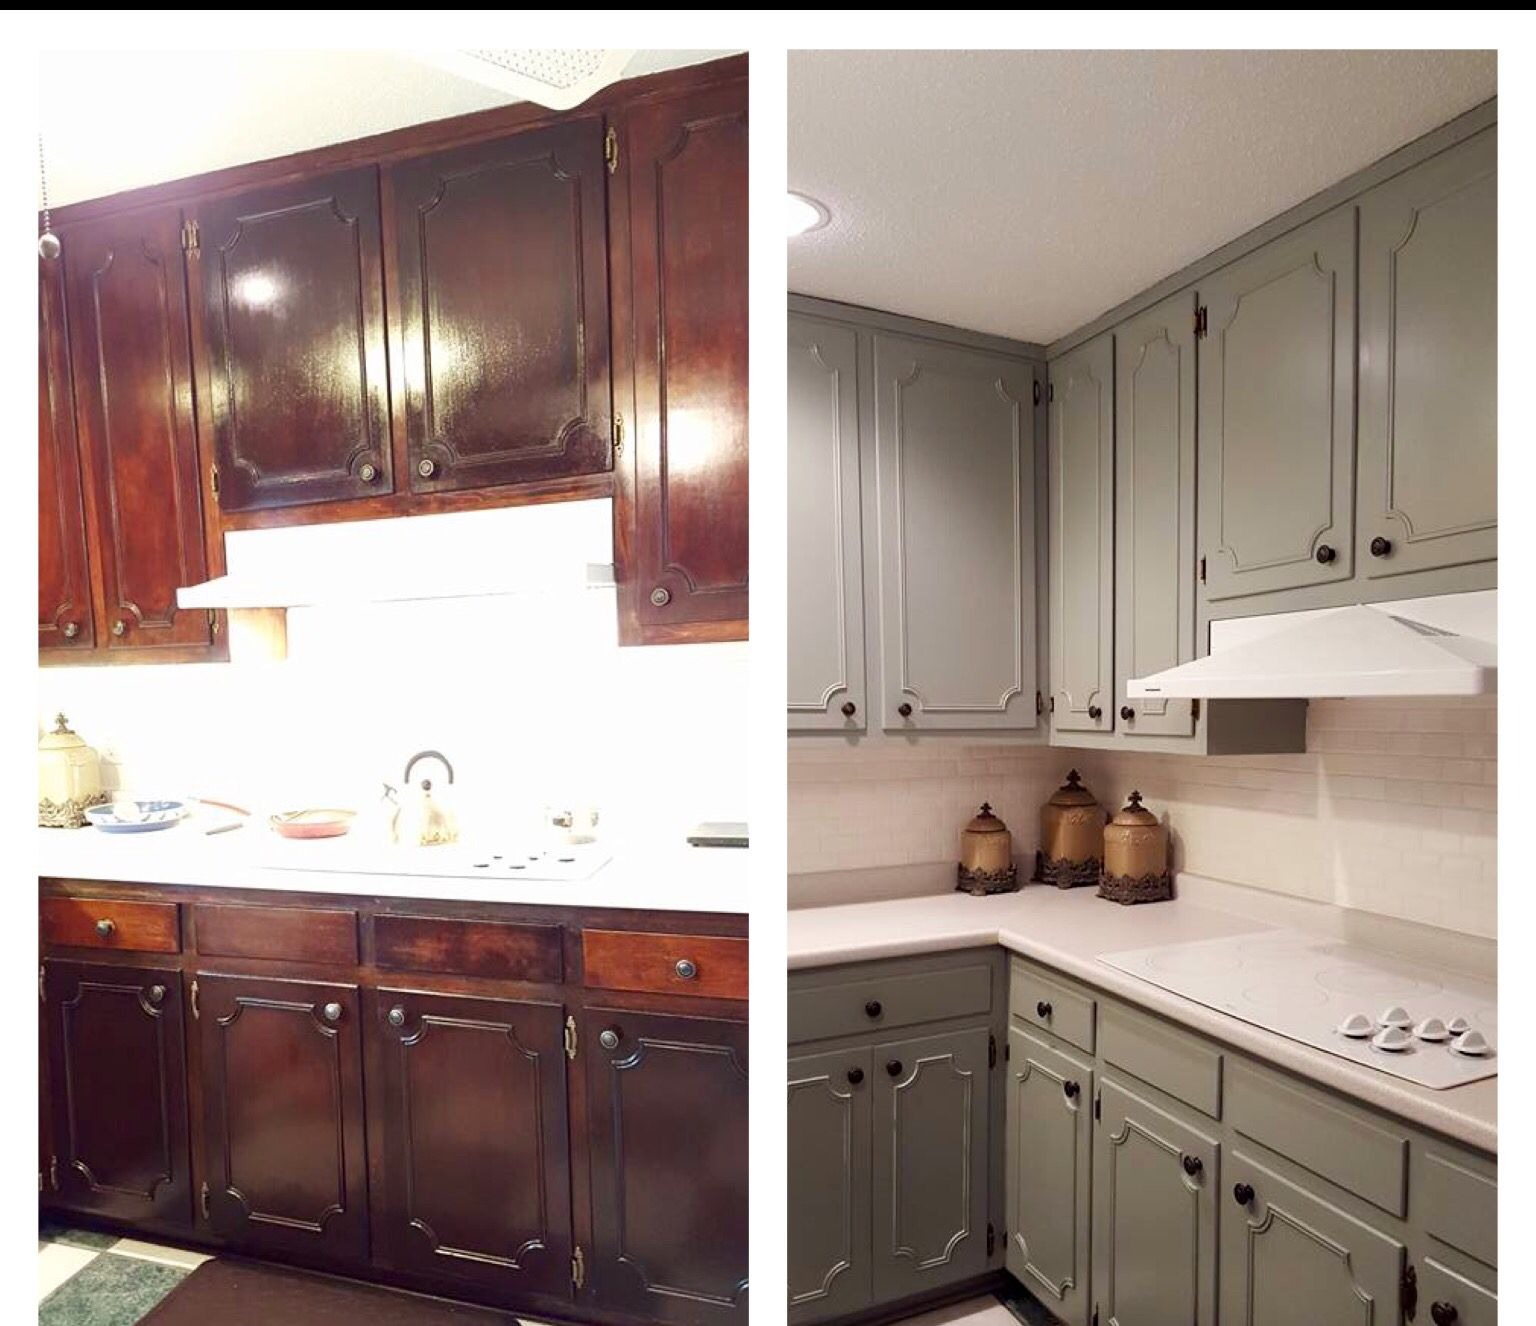 Before And After Kitchen Behr Sage Gray Paint Kitchen Remodel New Kitchen Pretty Kitchen Behr kitchen and bath paint